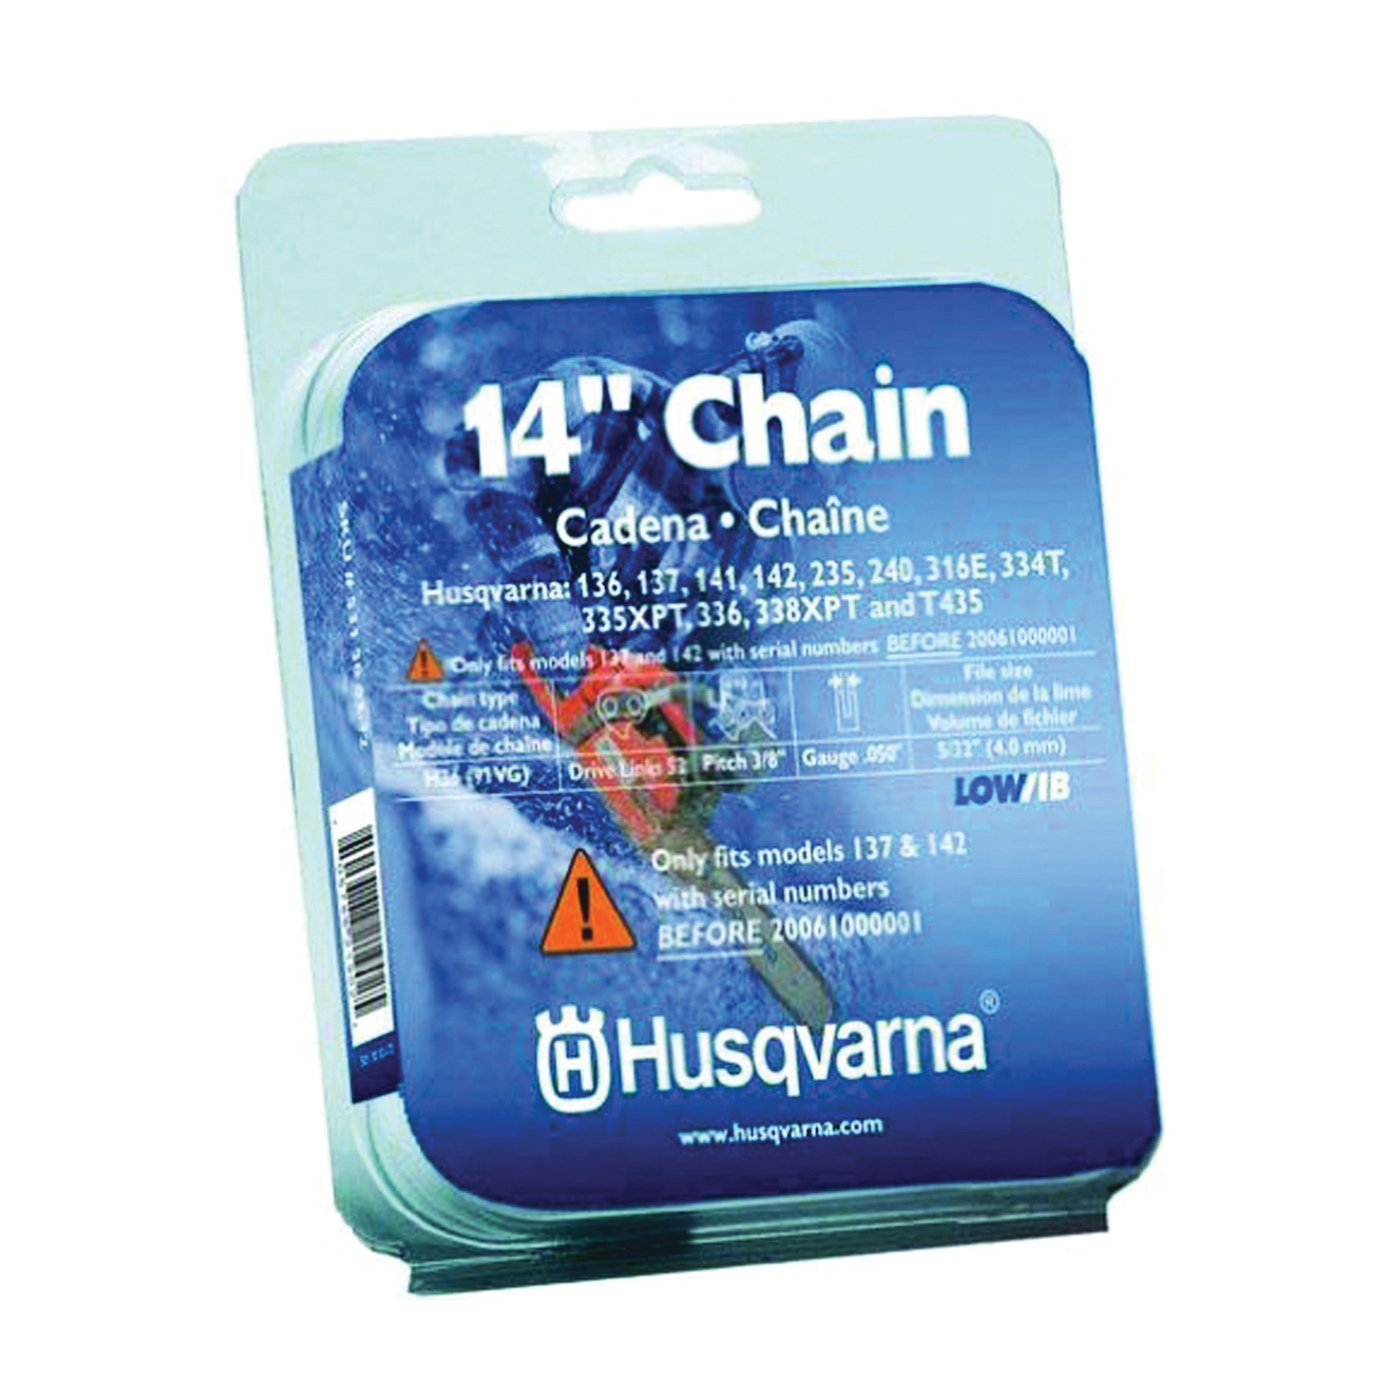 Picture of Poulan Pro 531300372 Chainsaw Chain, 14 in L Bar, 0.05 Gauge, 3/8 in TPI/Pitch